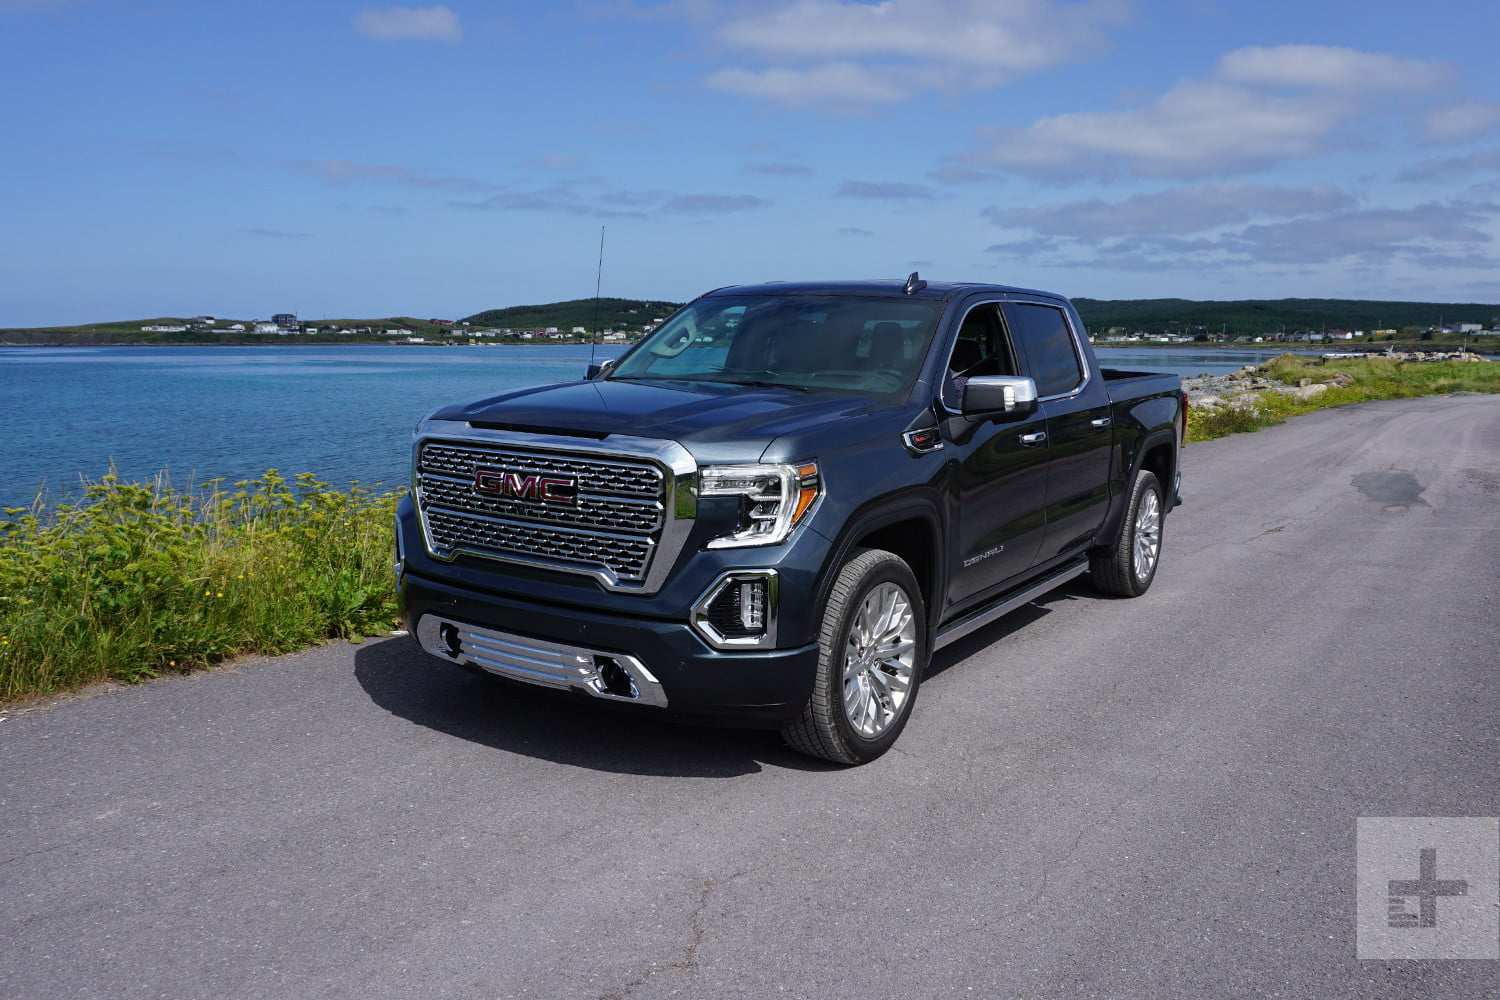 79 The 2019 GMC Sierra 1500 Diesel Price And Review